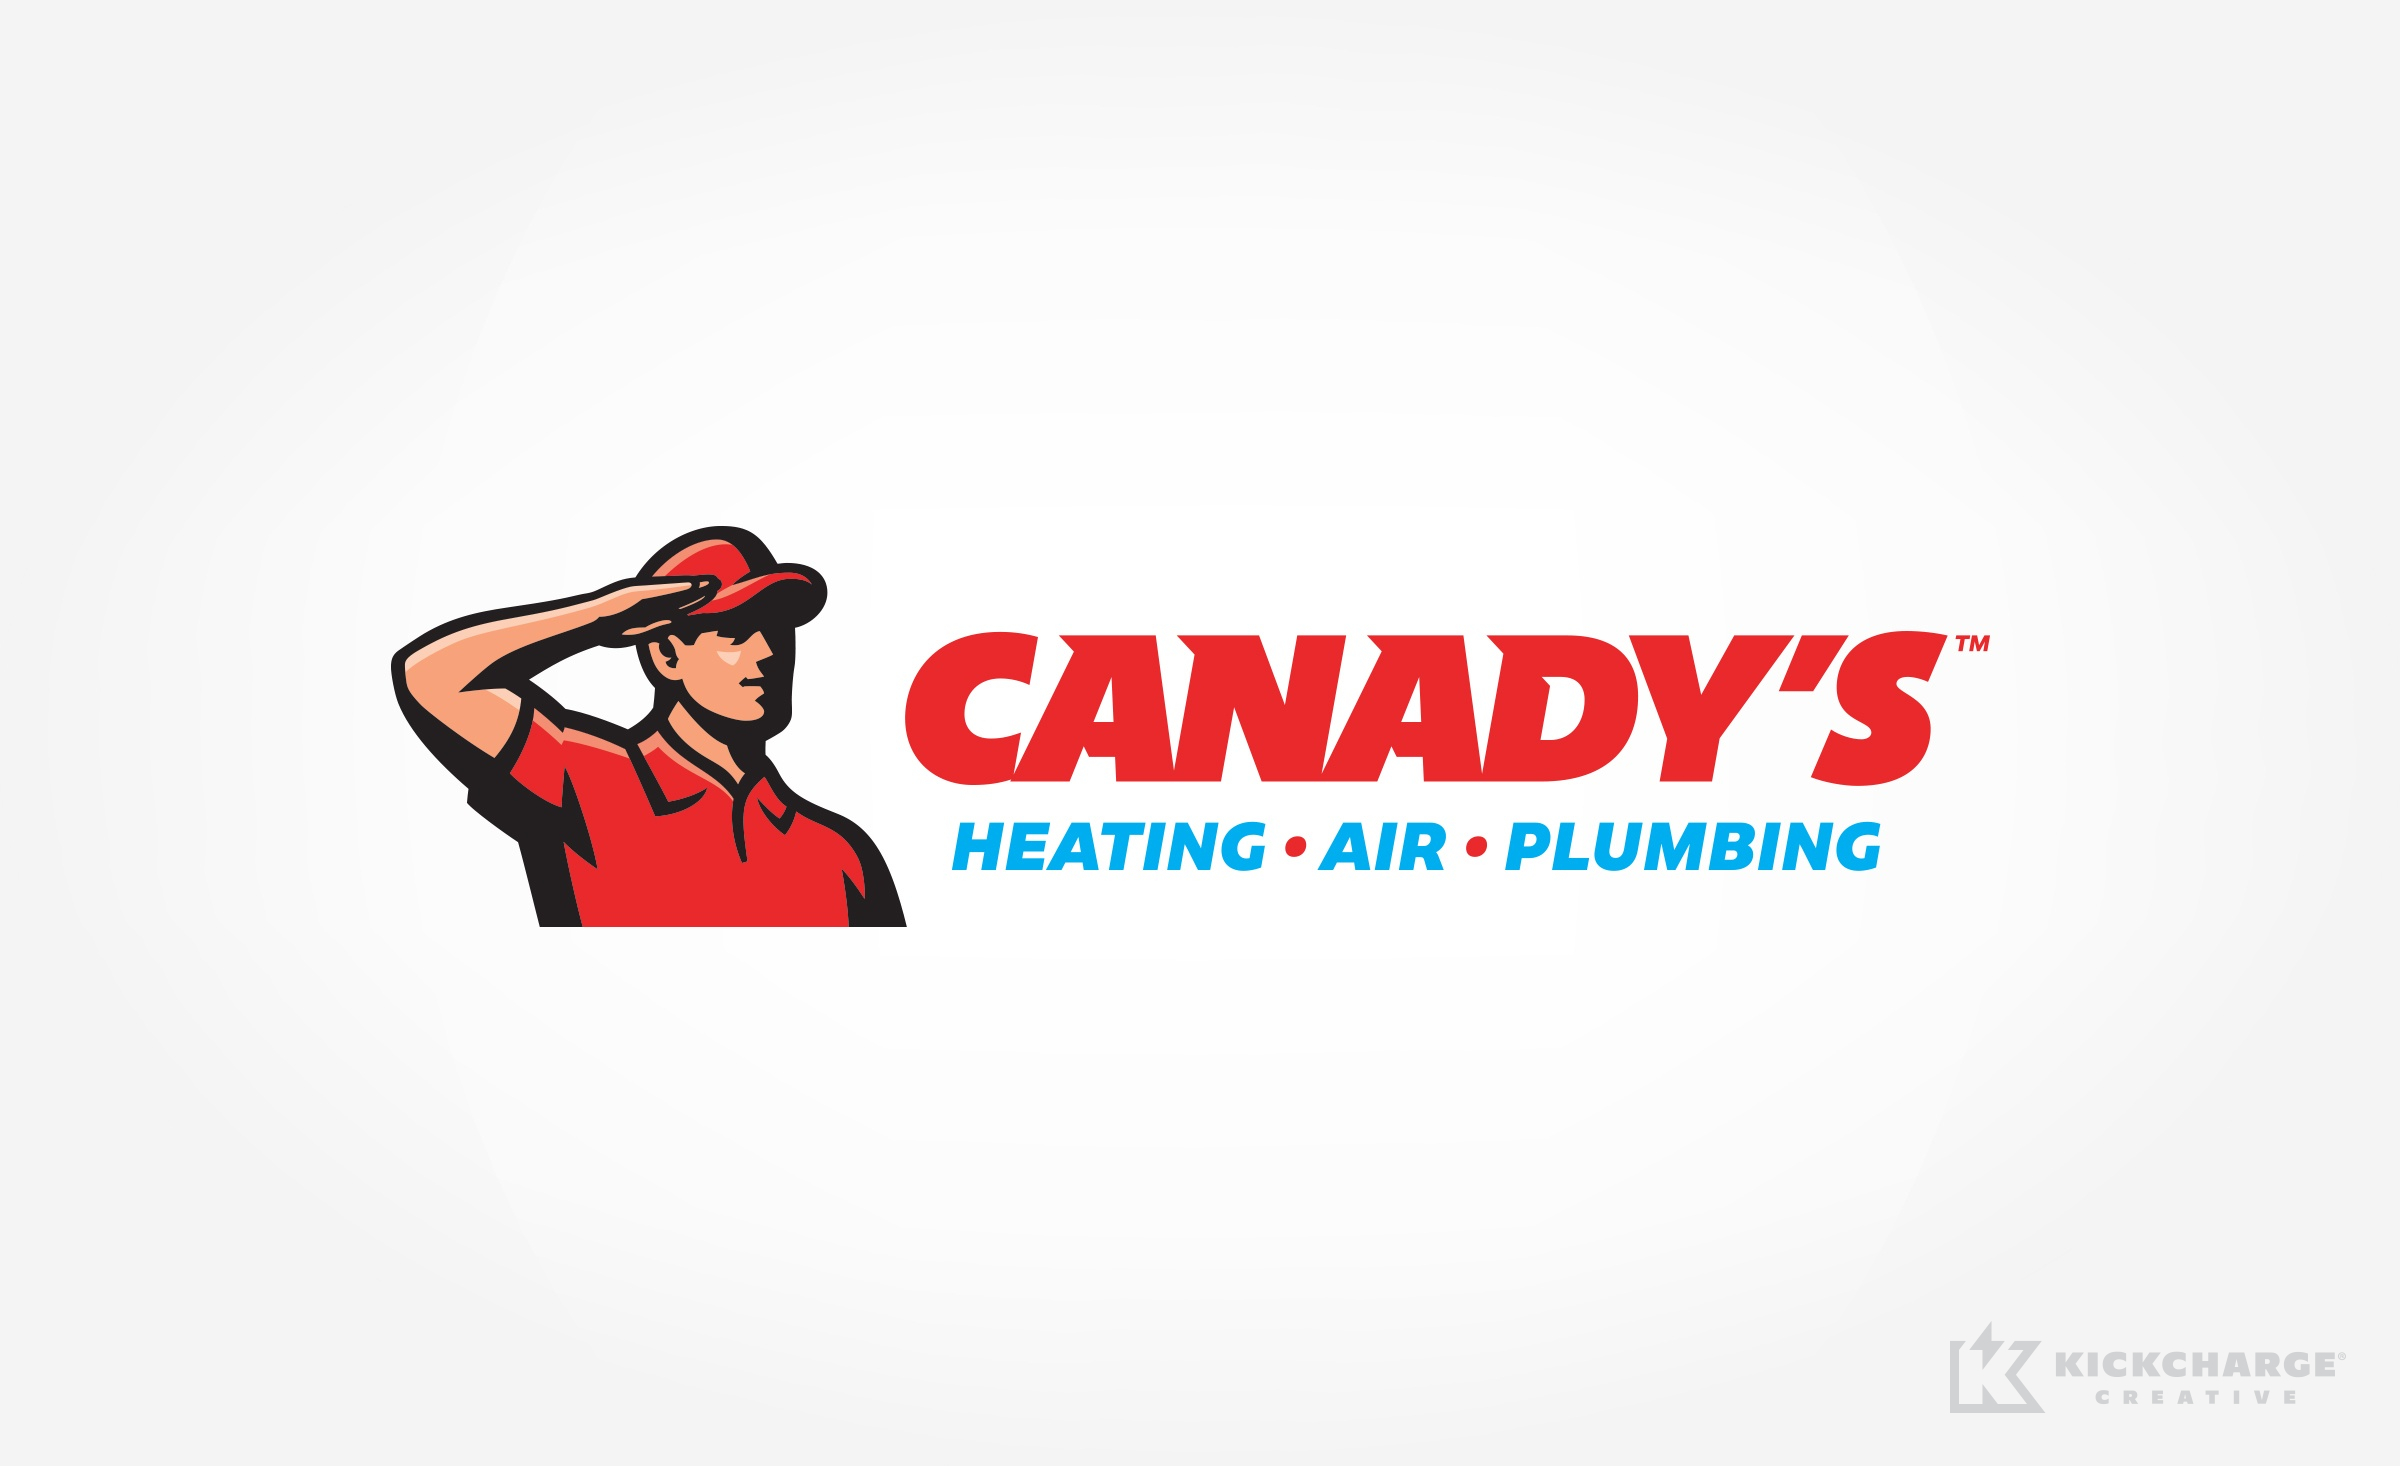 hvac and plumbing logo for Canady's